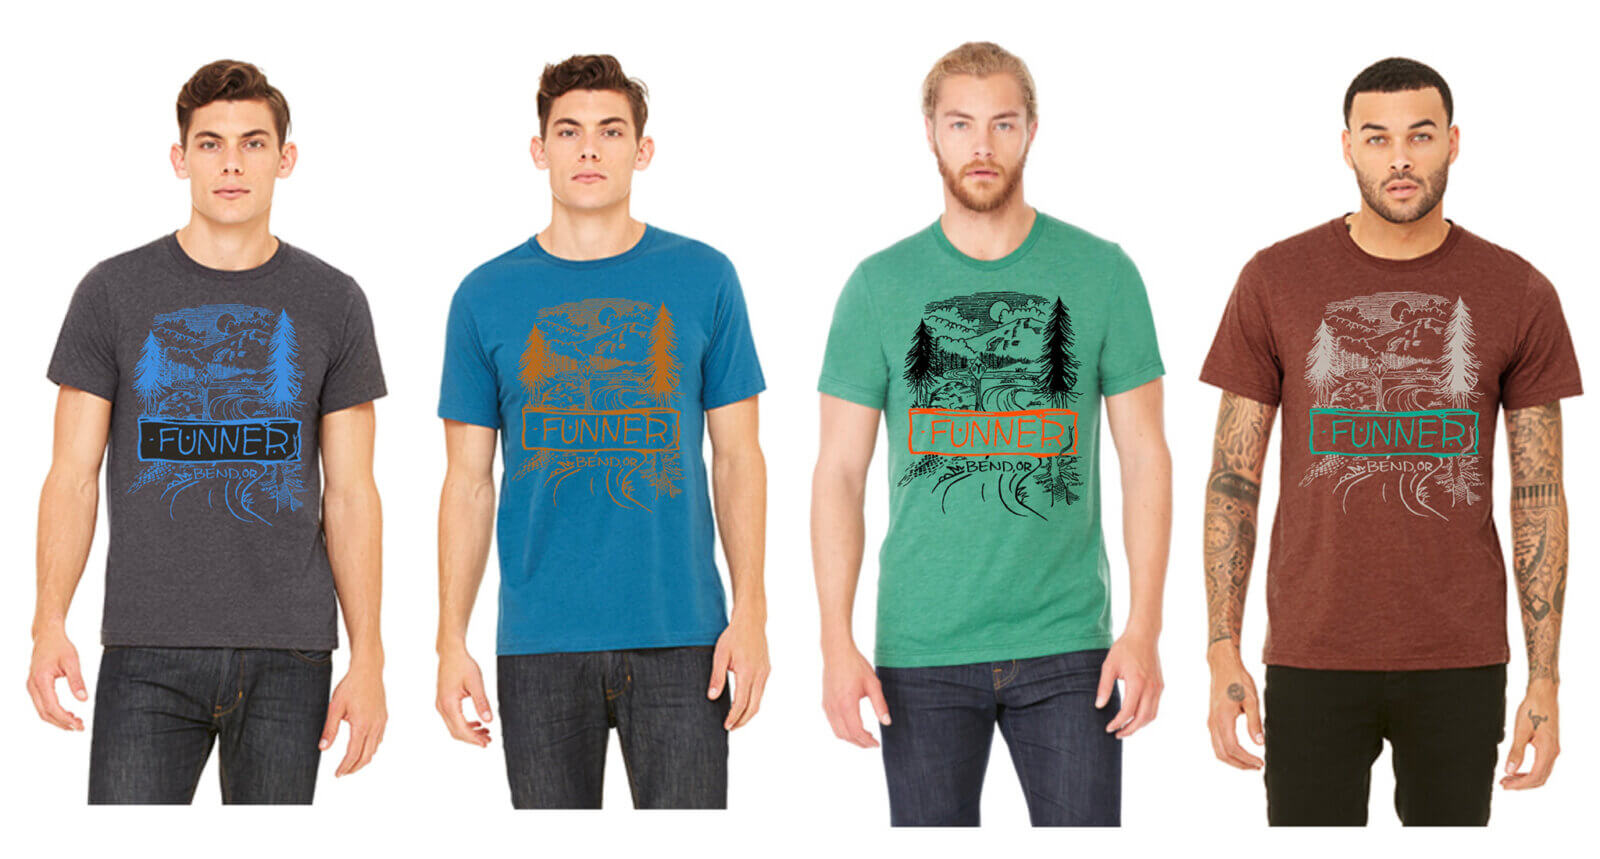 T shirt designs by Crowerks